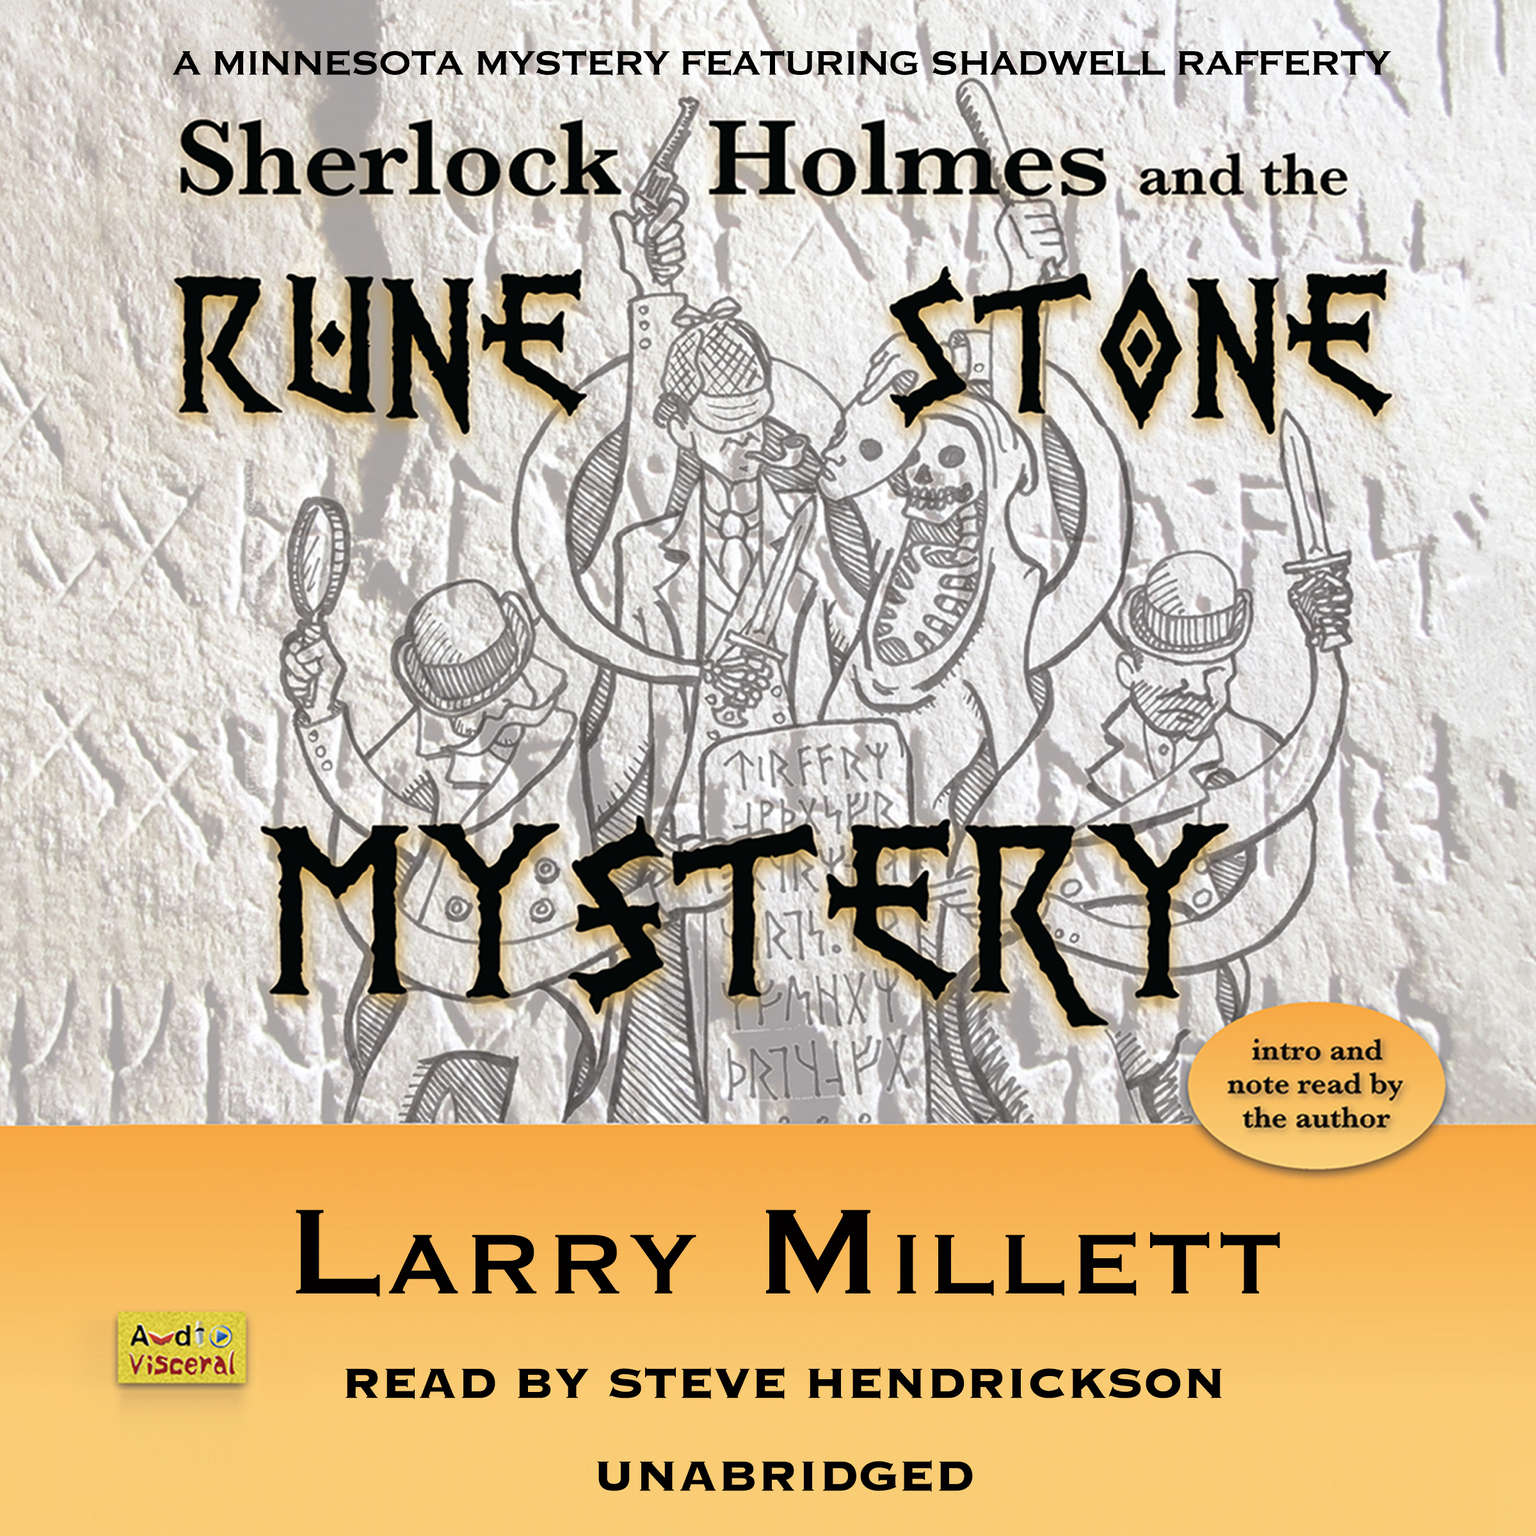 Printable Sherlock Holmes and the Rune Stone Mystery: A Minnesota Mystery Featuring Shadwell Rafferty Audiobook Cover Art